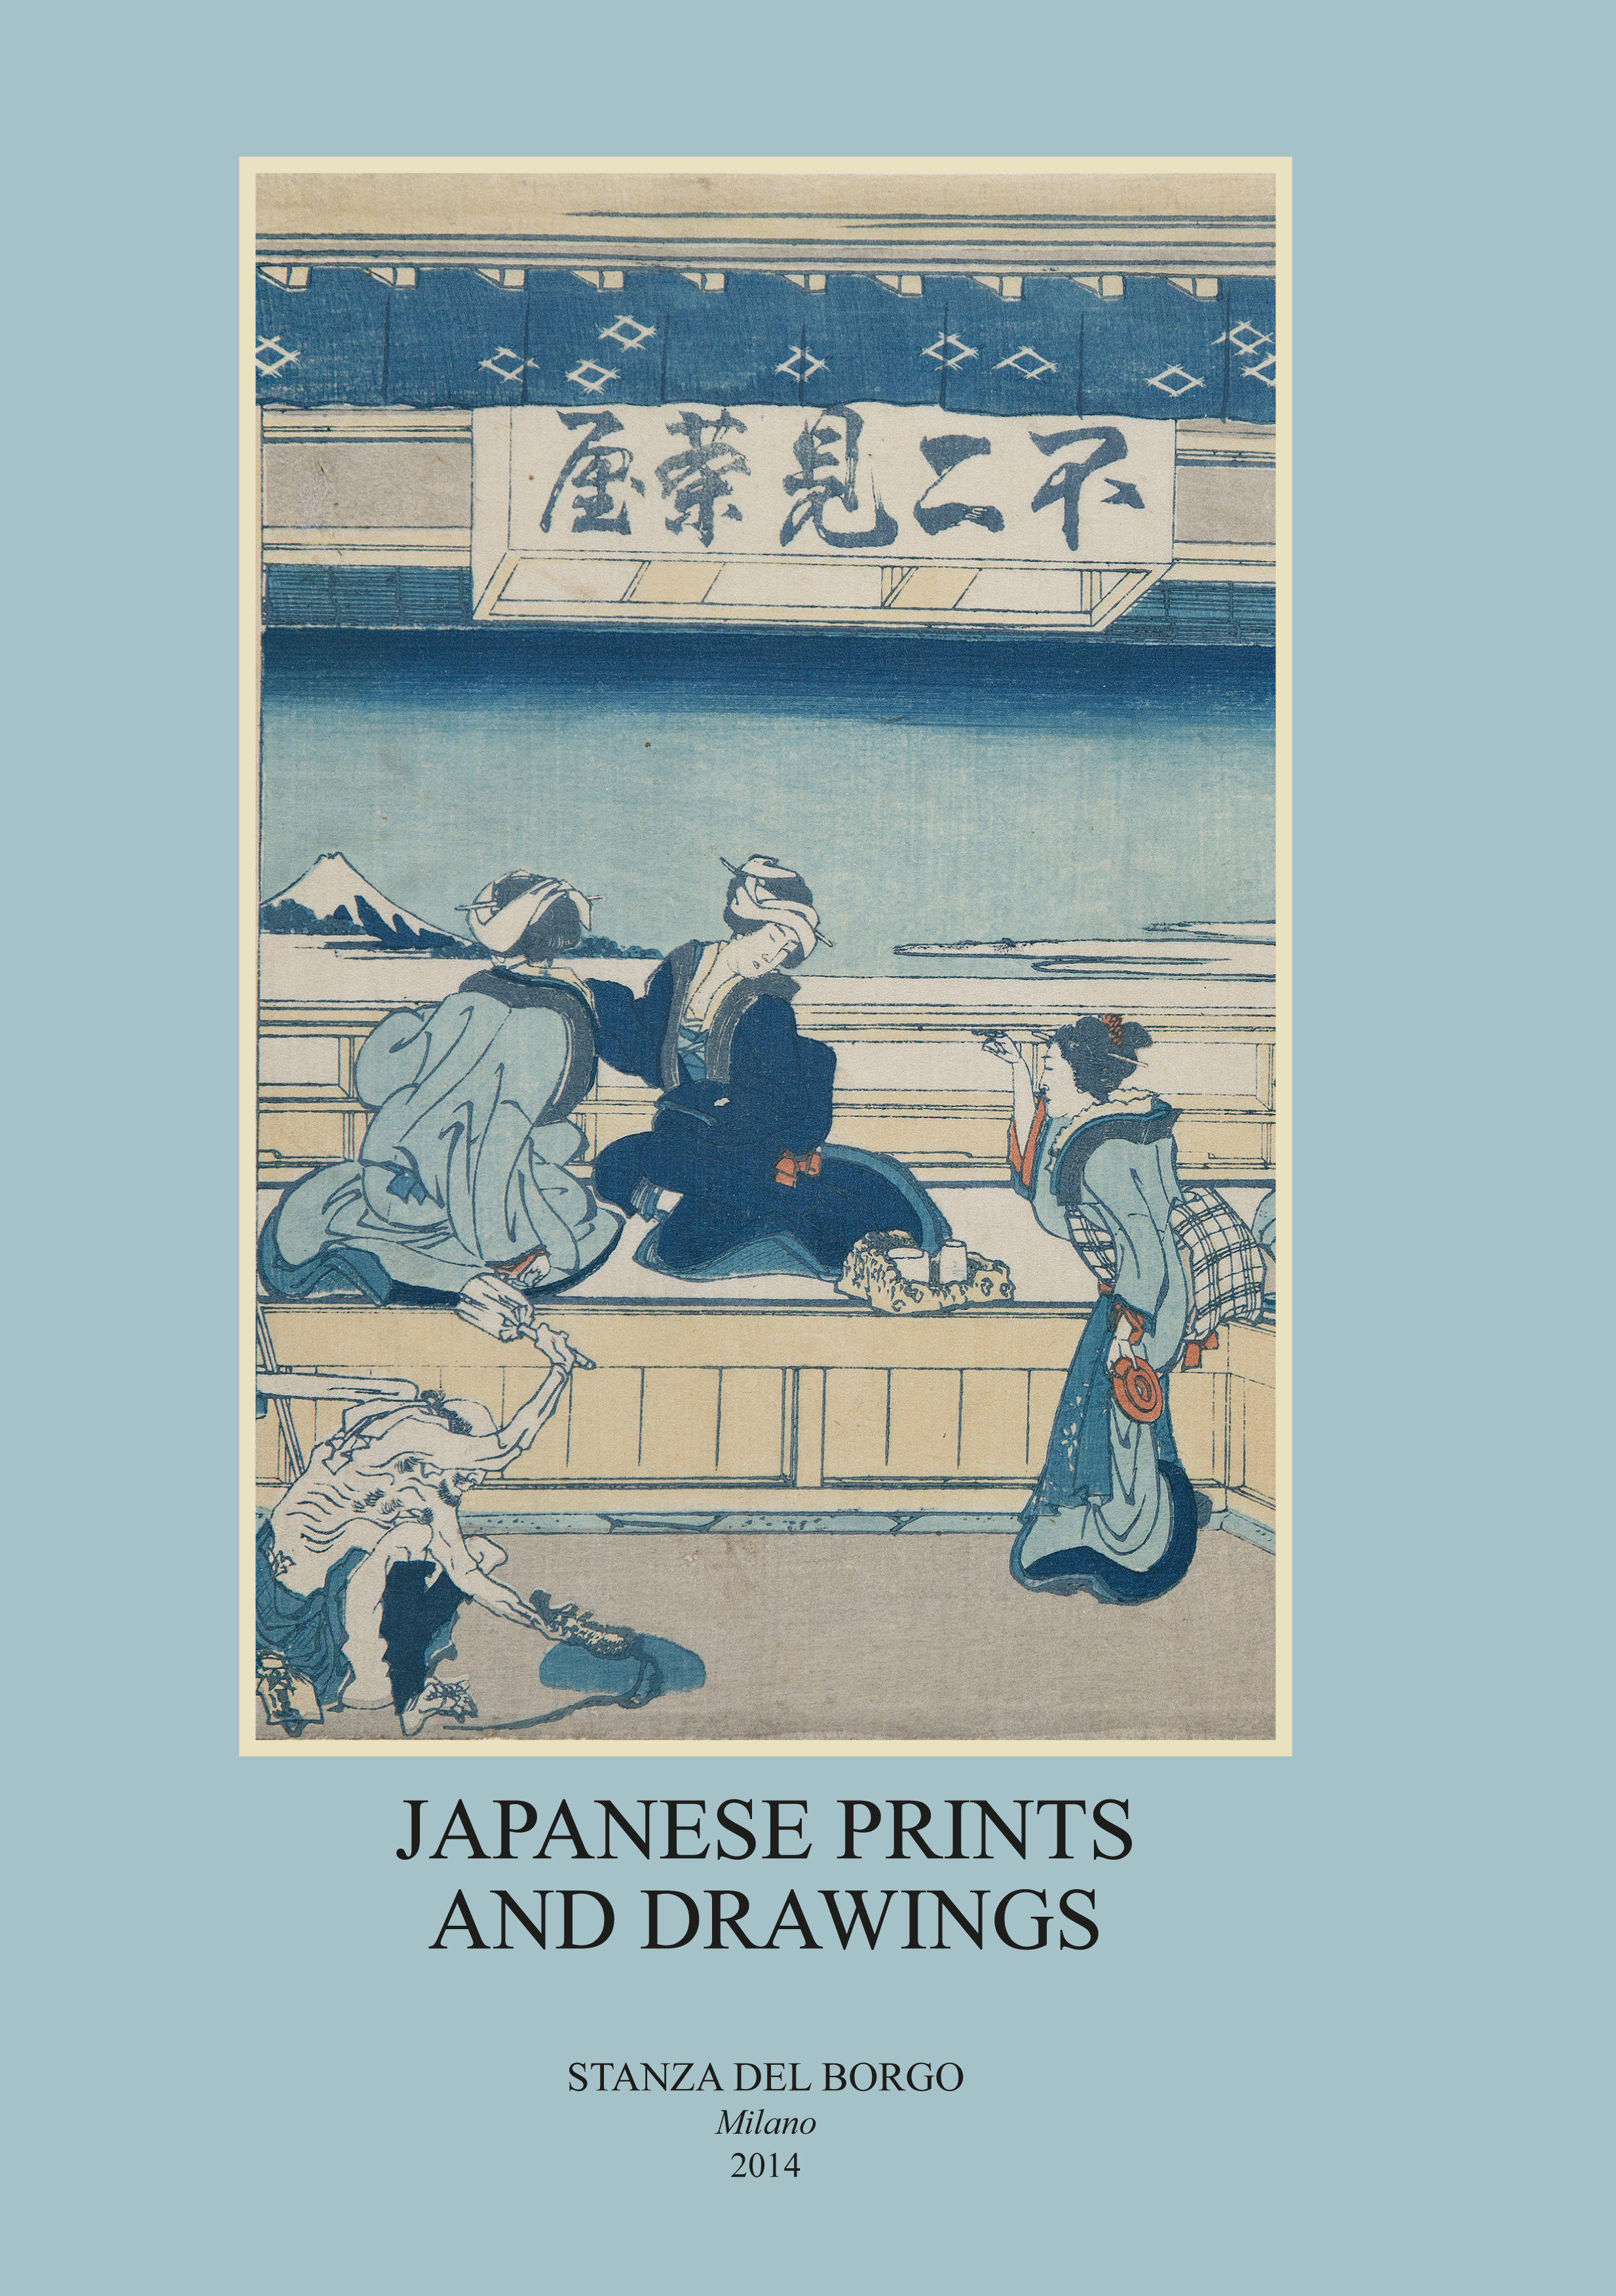 Japanese Prints and Drawings 2014